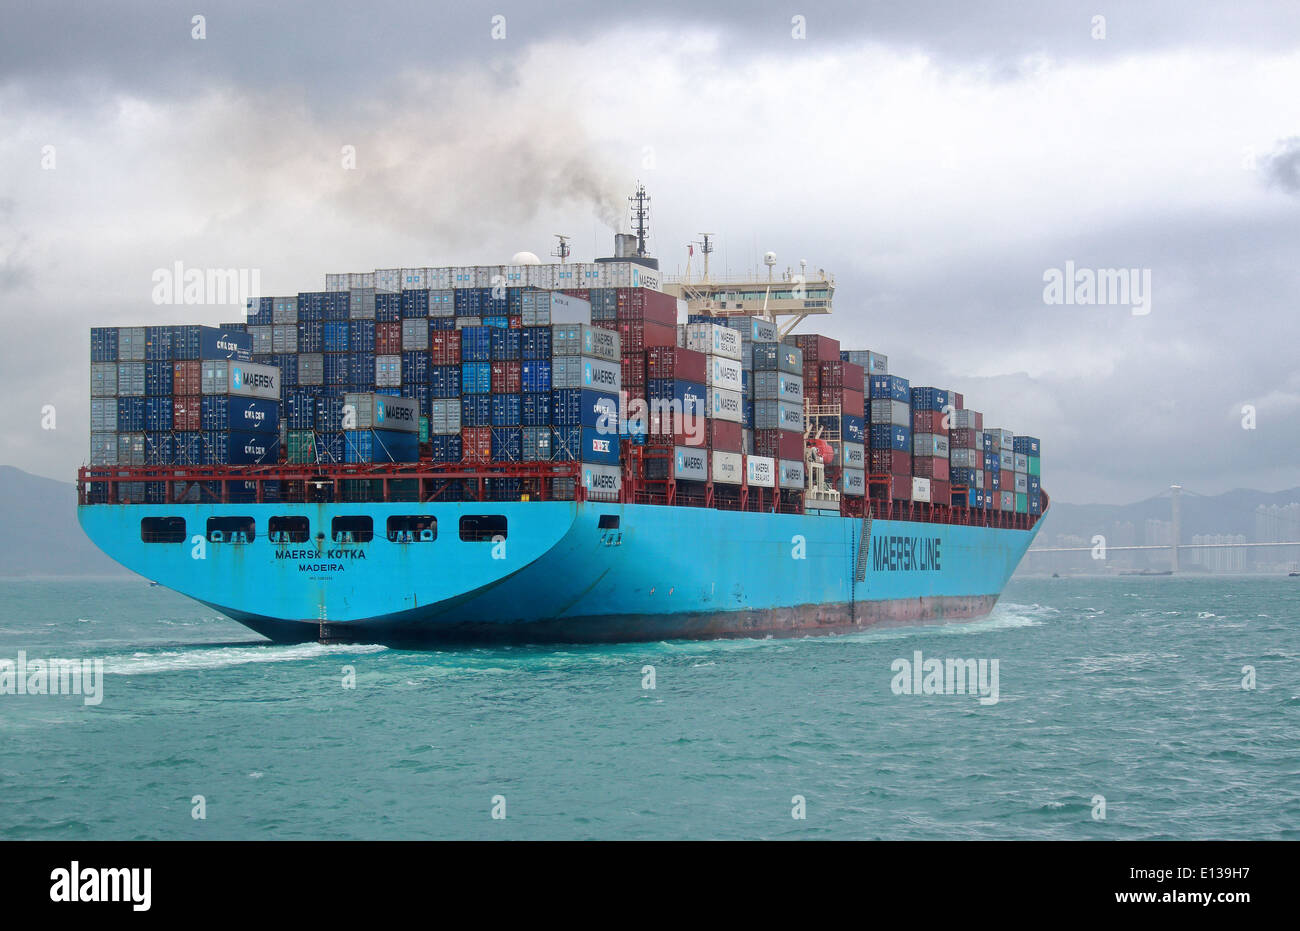 Container ship MAERSK KOTKA (IMO: 9085534, MMSI: 255805595) with containers in Hong Kong - Stock Image